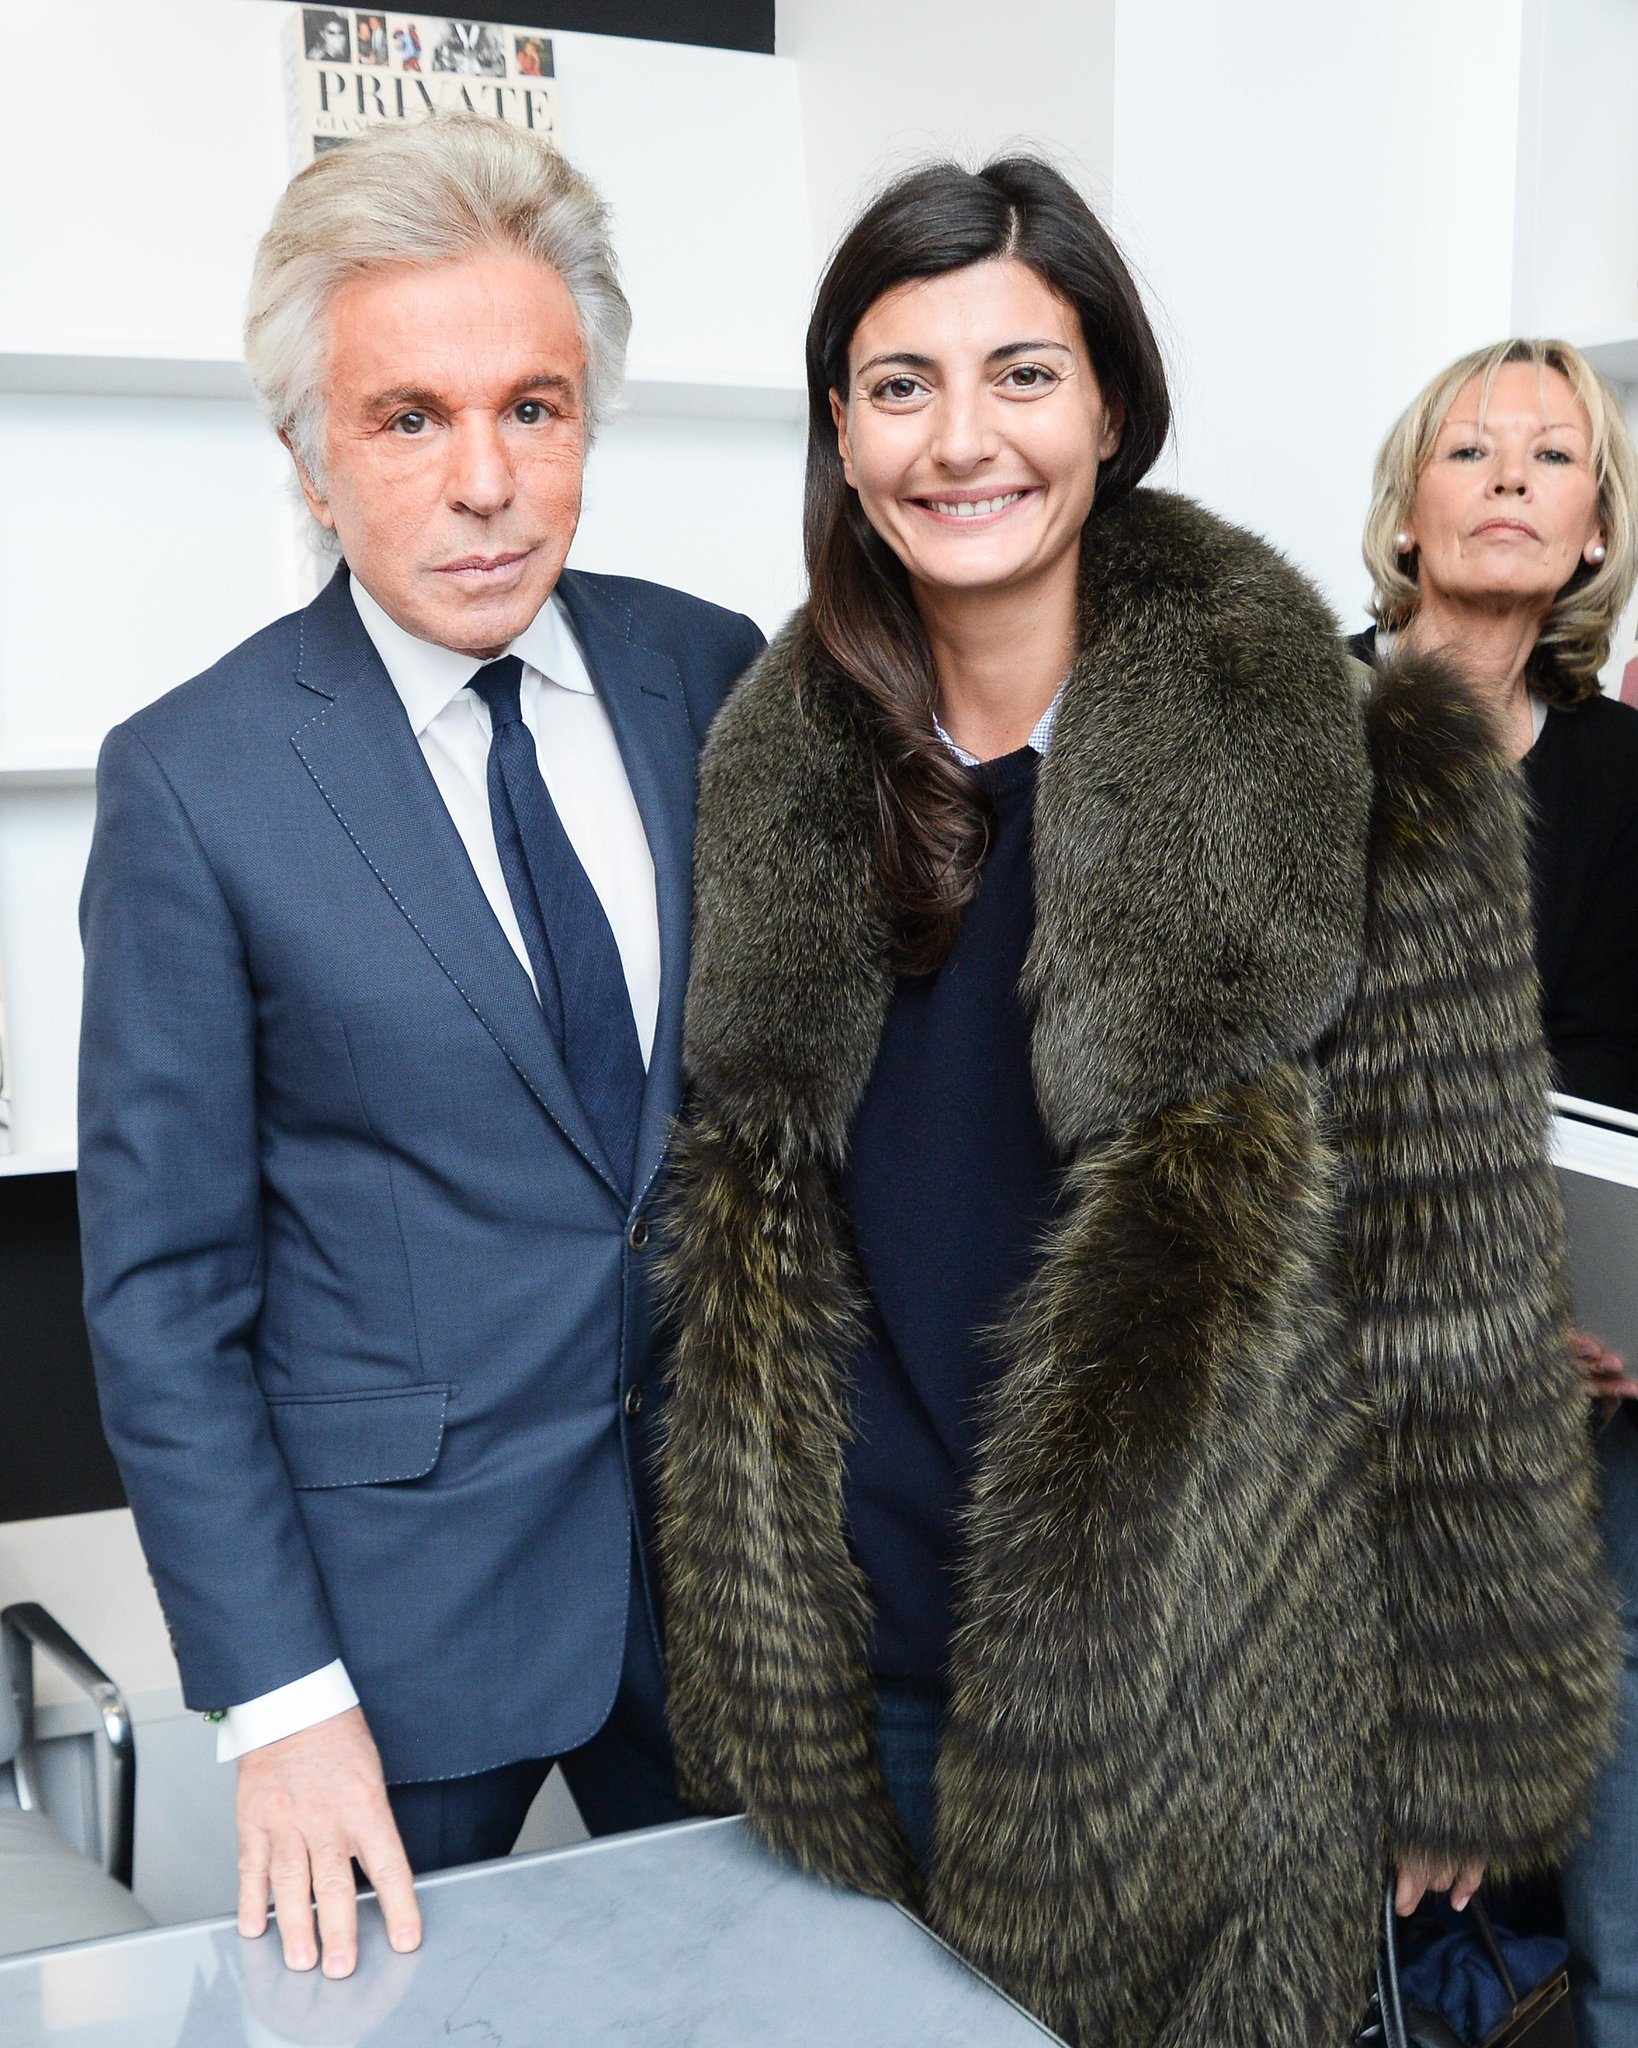 Giancarlo Giammetti and Giovanna Battaglia at the Gagosian Shop fete for Private.